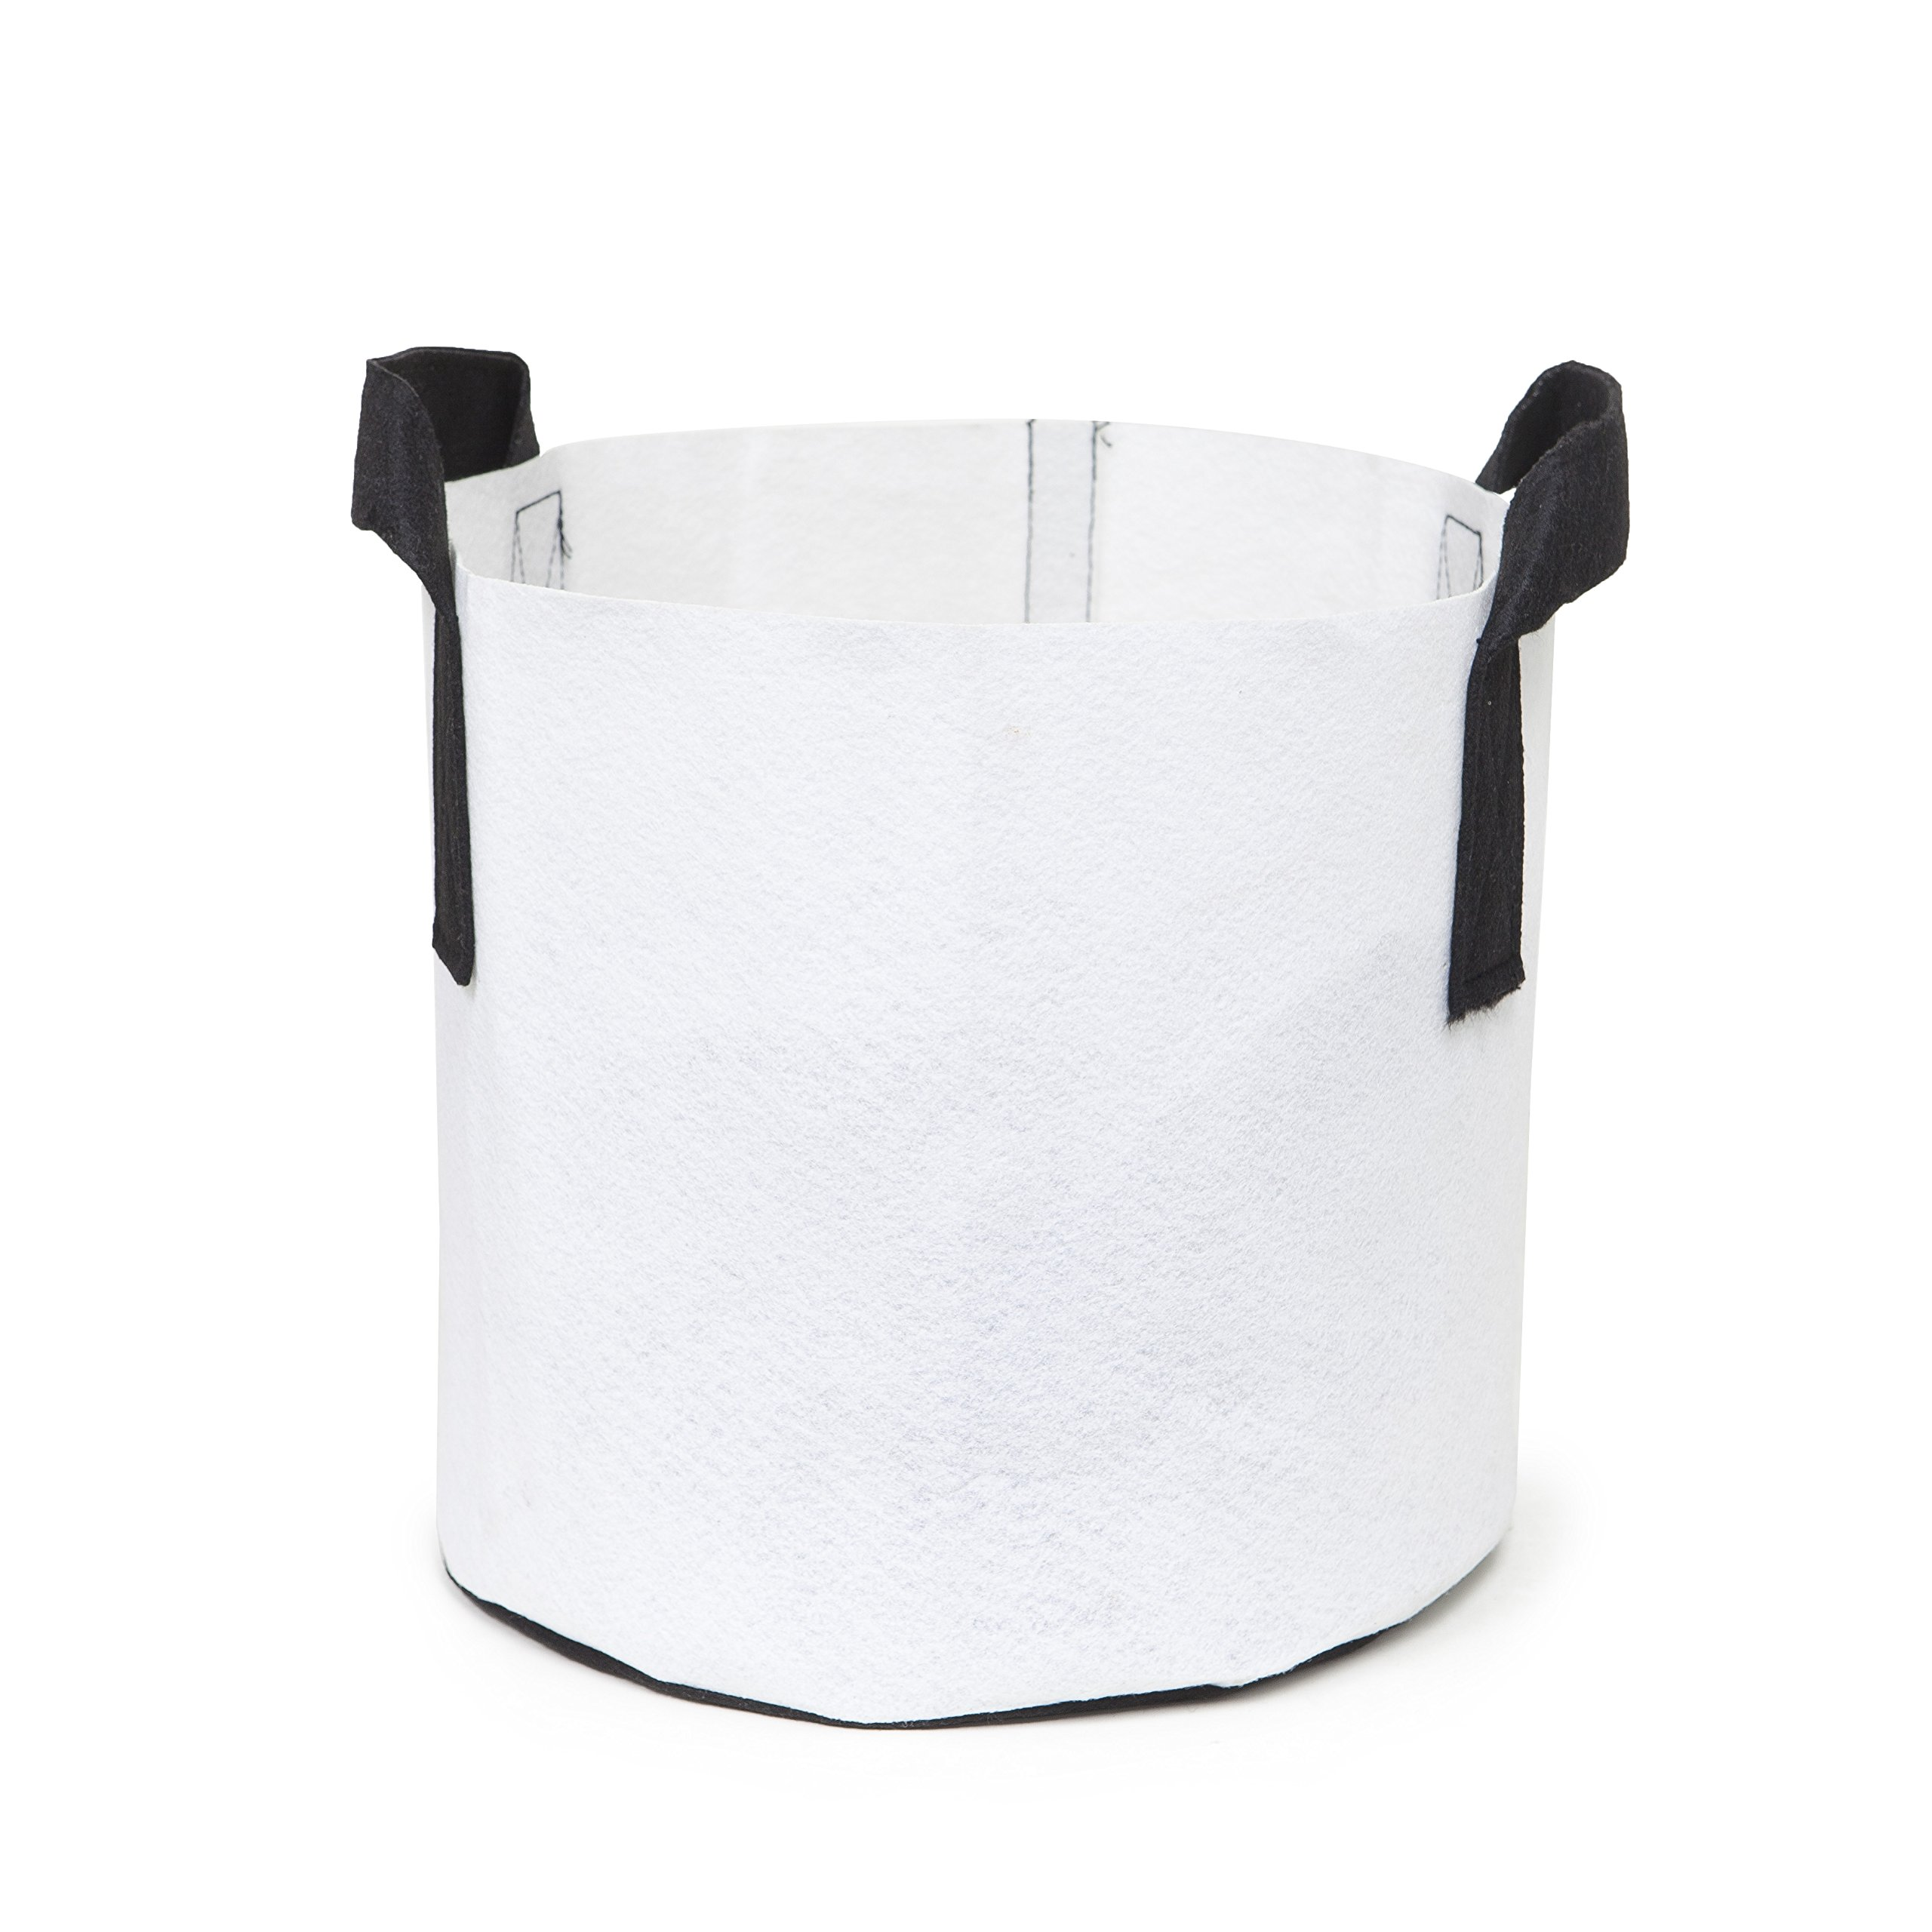 247Garden 6-Pack 7 Gallon Grow Bags/Aeration Fabric Pots w/Handles (White) by 247Garden (Image #2)